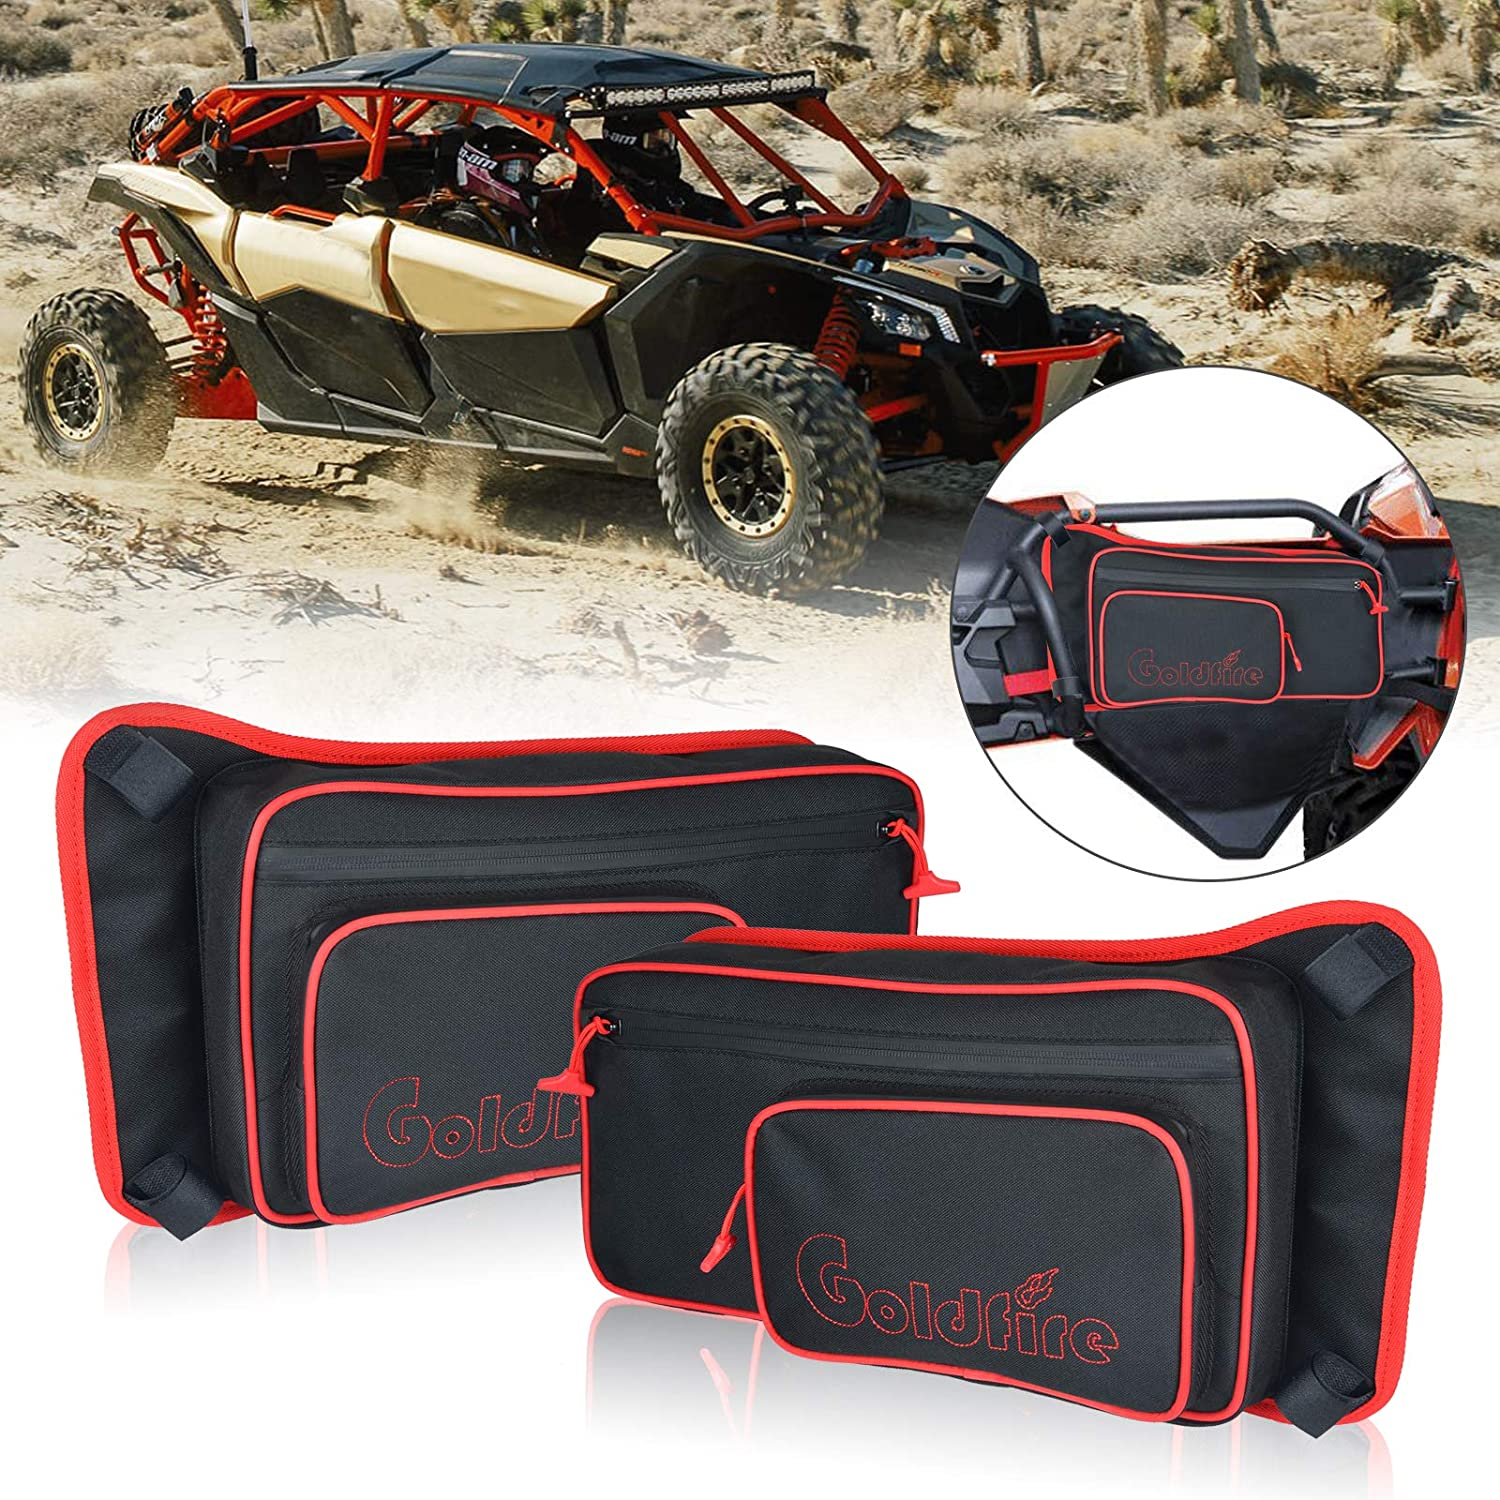 Max 85% OFF Sresk Maverick X3 Accessories Rear Bags for 20 Complete Free Shipping Door